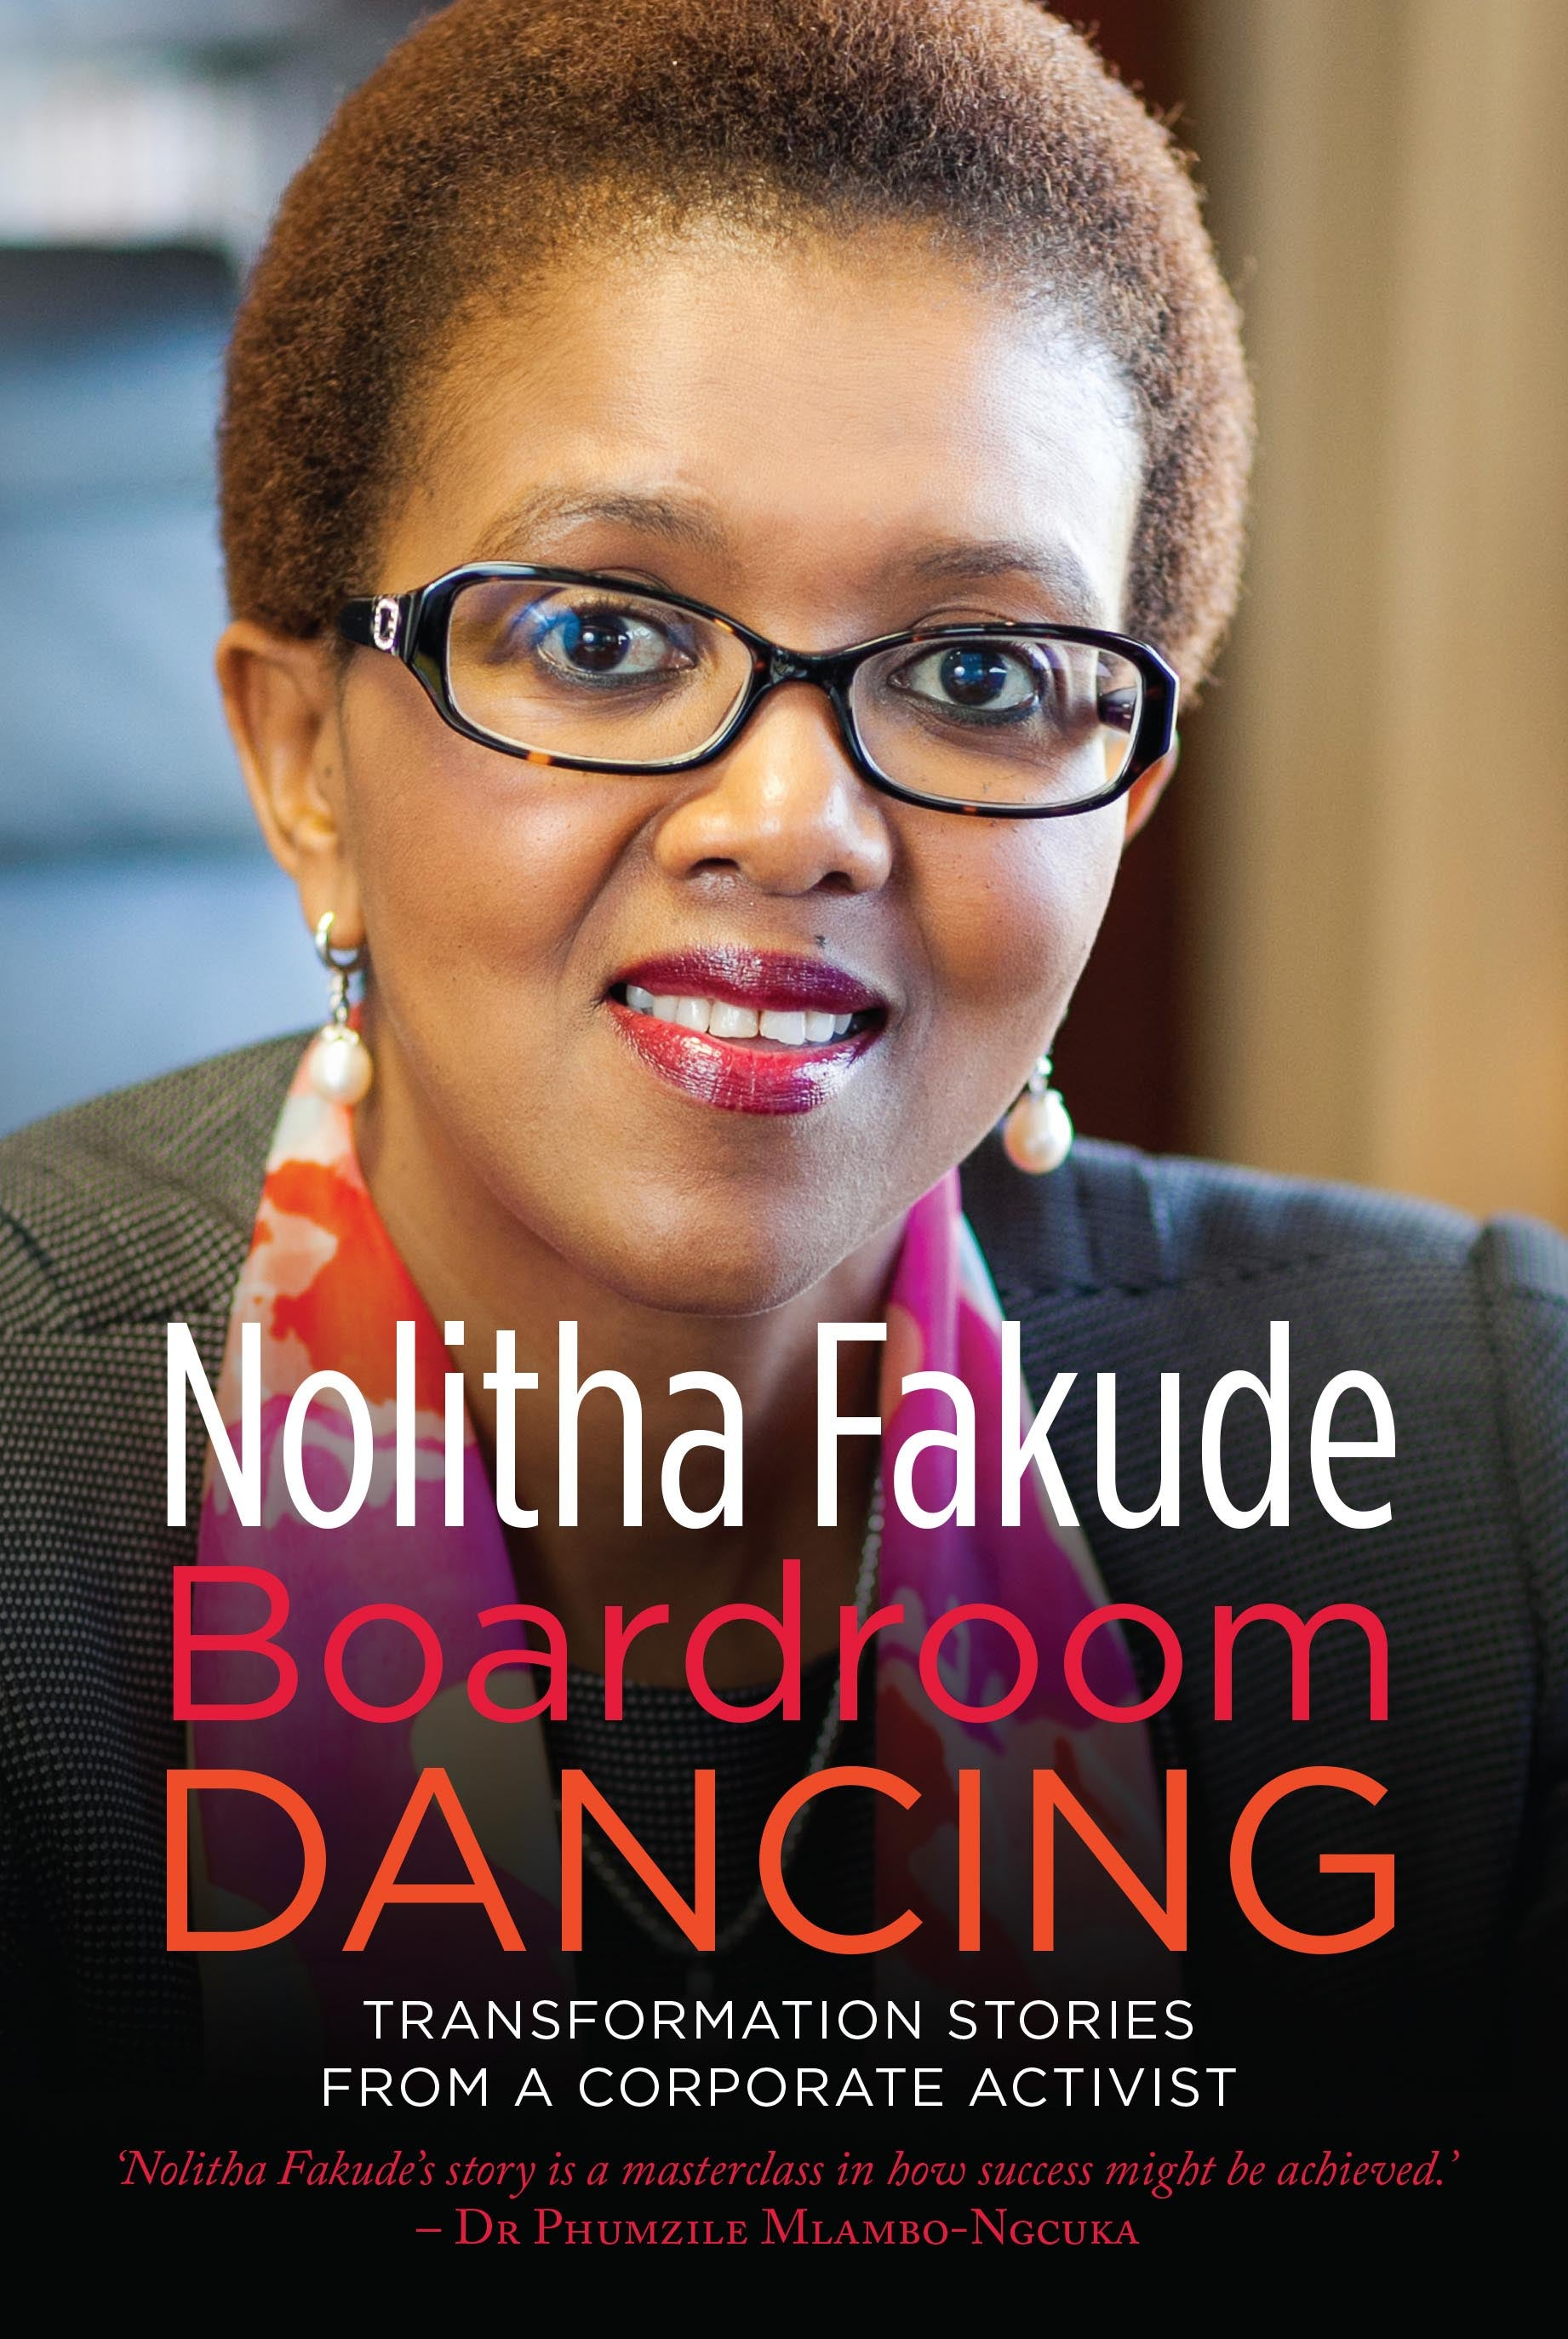 Jacket Cover for Boardroom Dancing by Nolitha Fakude (featuring headshot of the author)